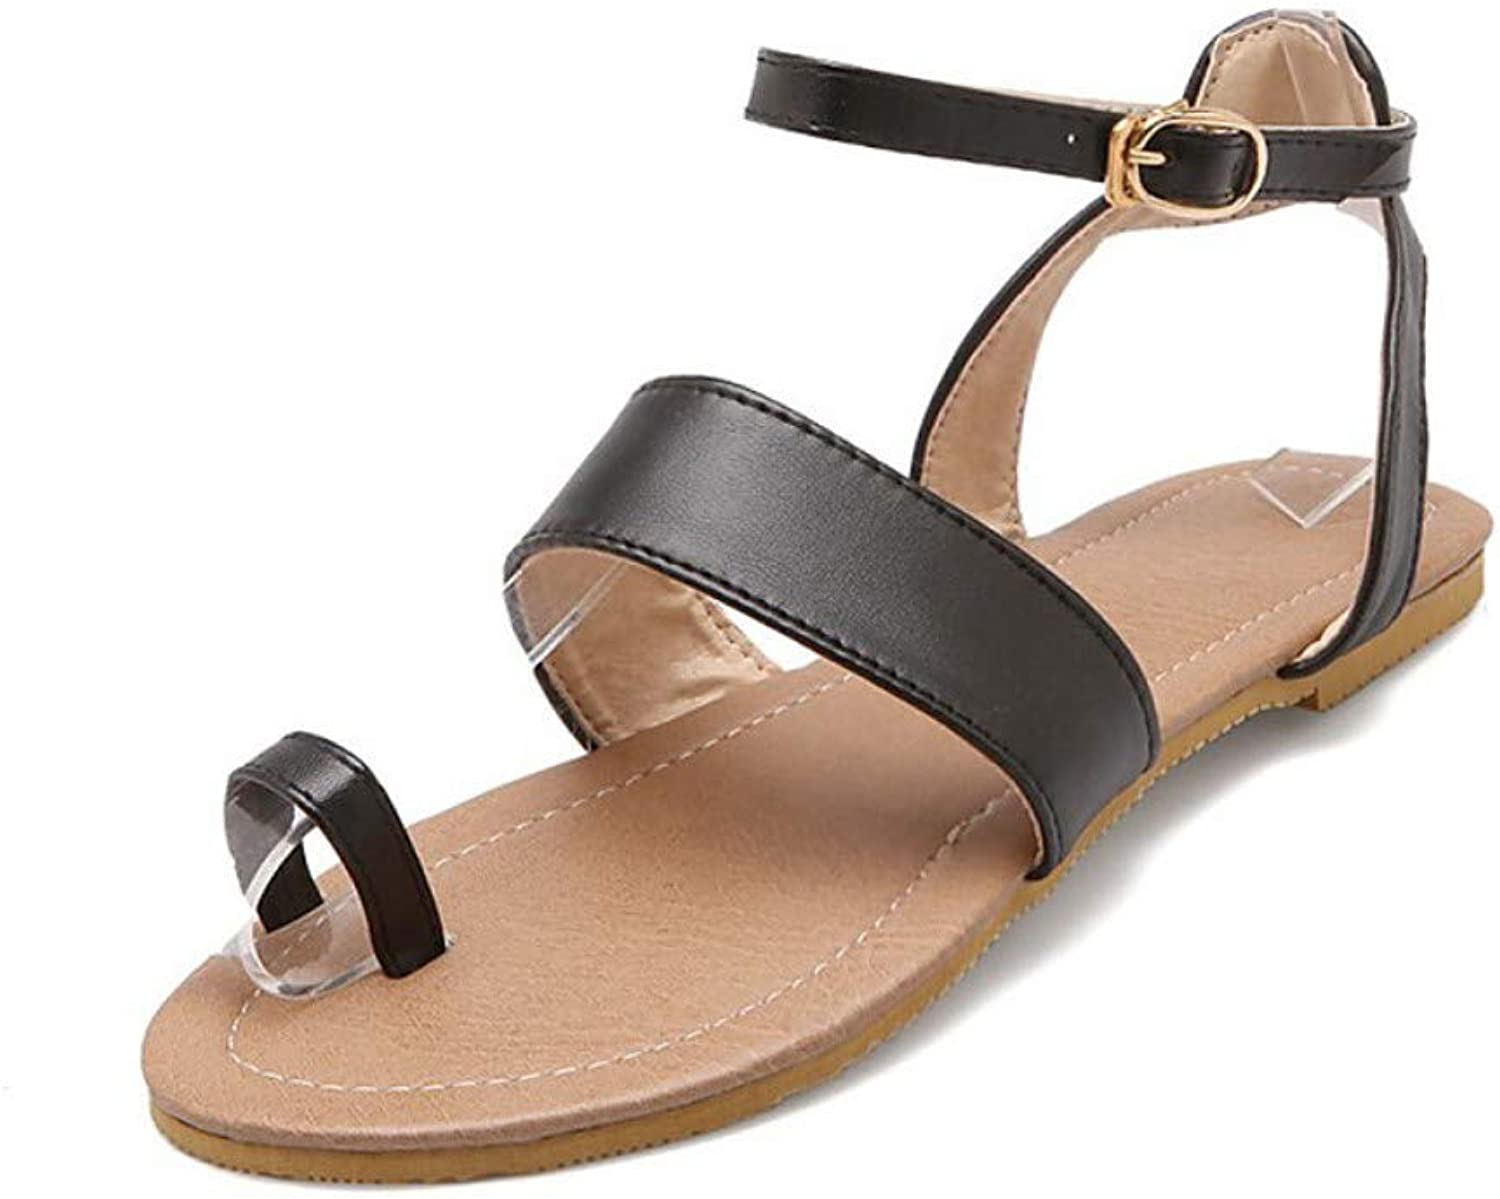 IWlxz Women's PU(Polyurethane) Spring & Summer Sandals Flat Heel Open Toe Buckle Black Beige Almond